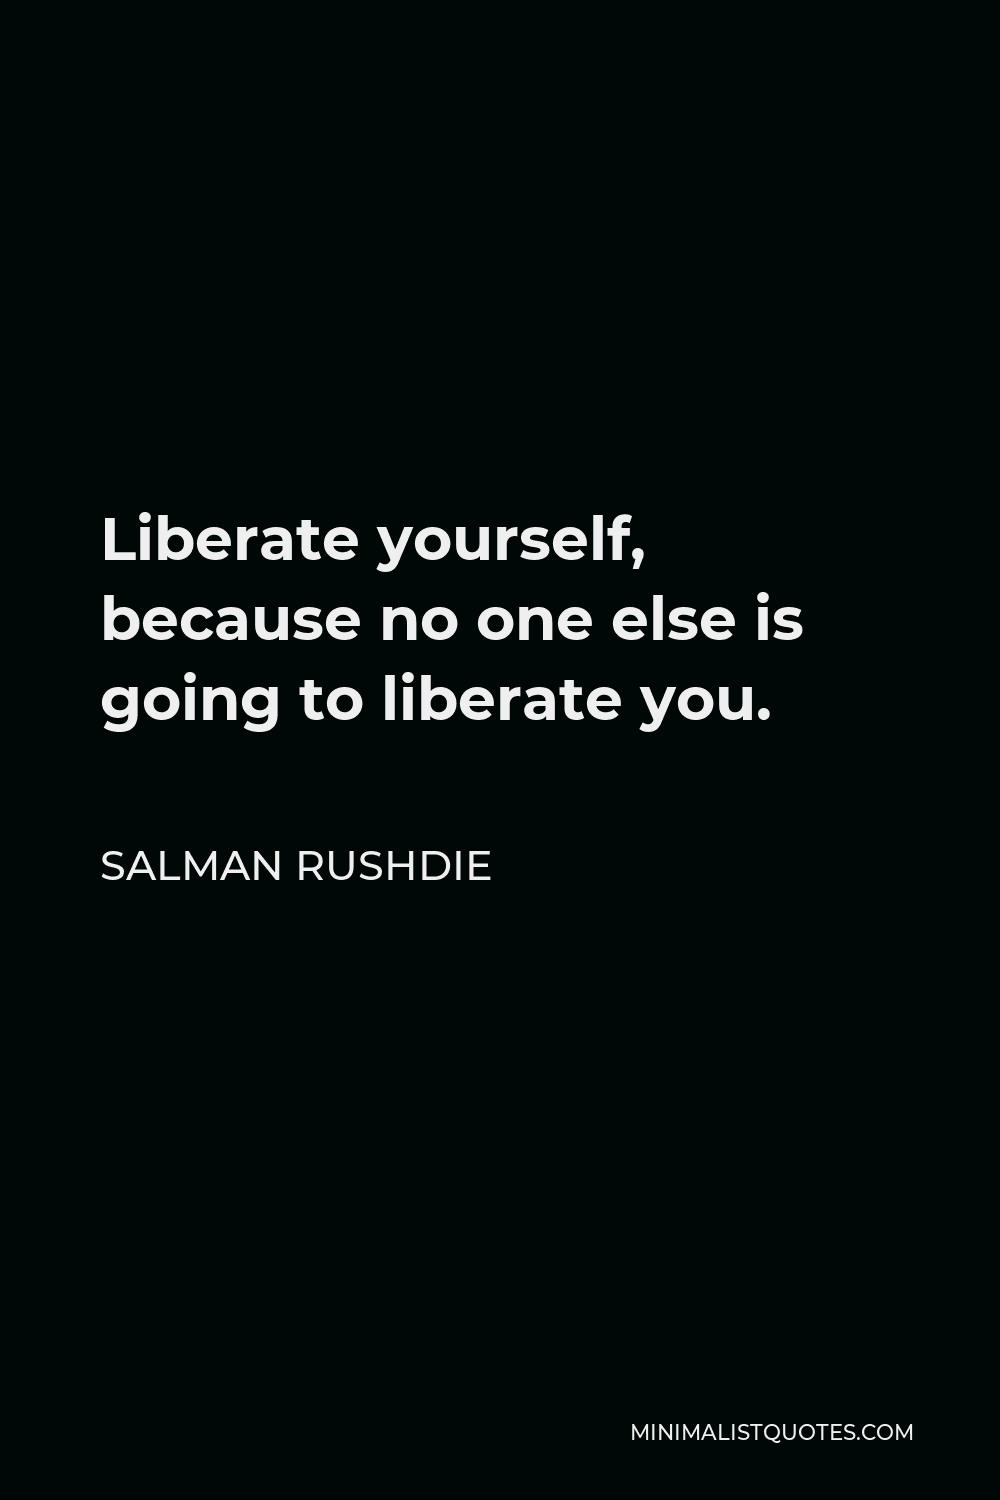 Salman Rushdie Quote - Liberate yourself, because no one else is going to liberate you.